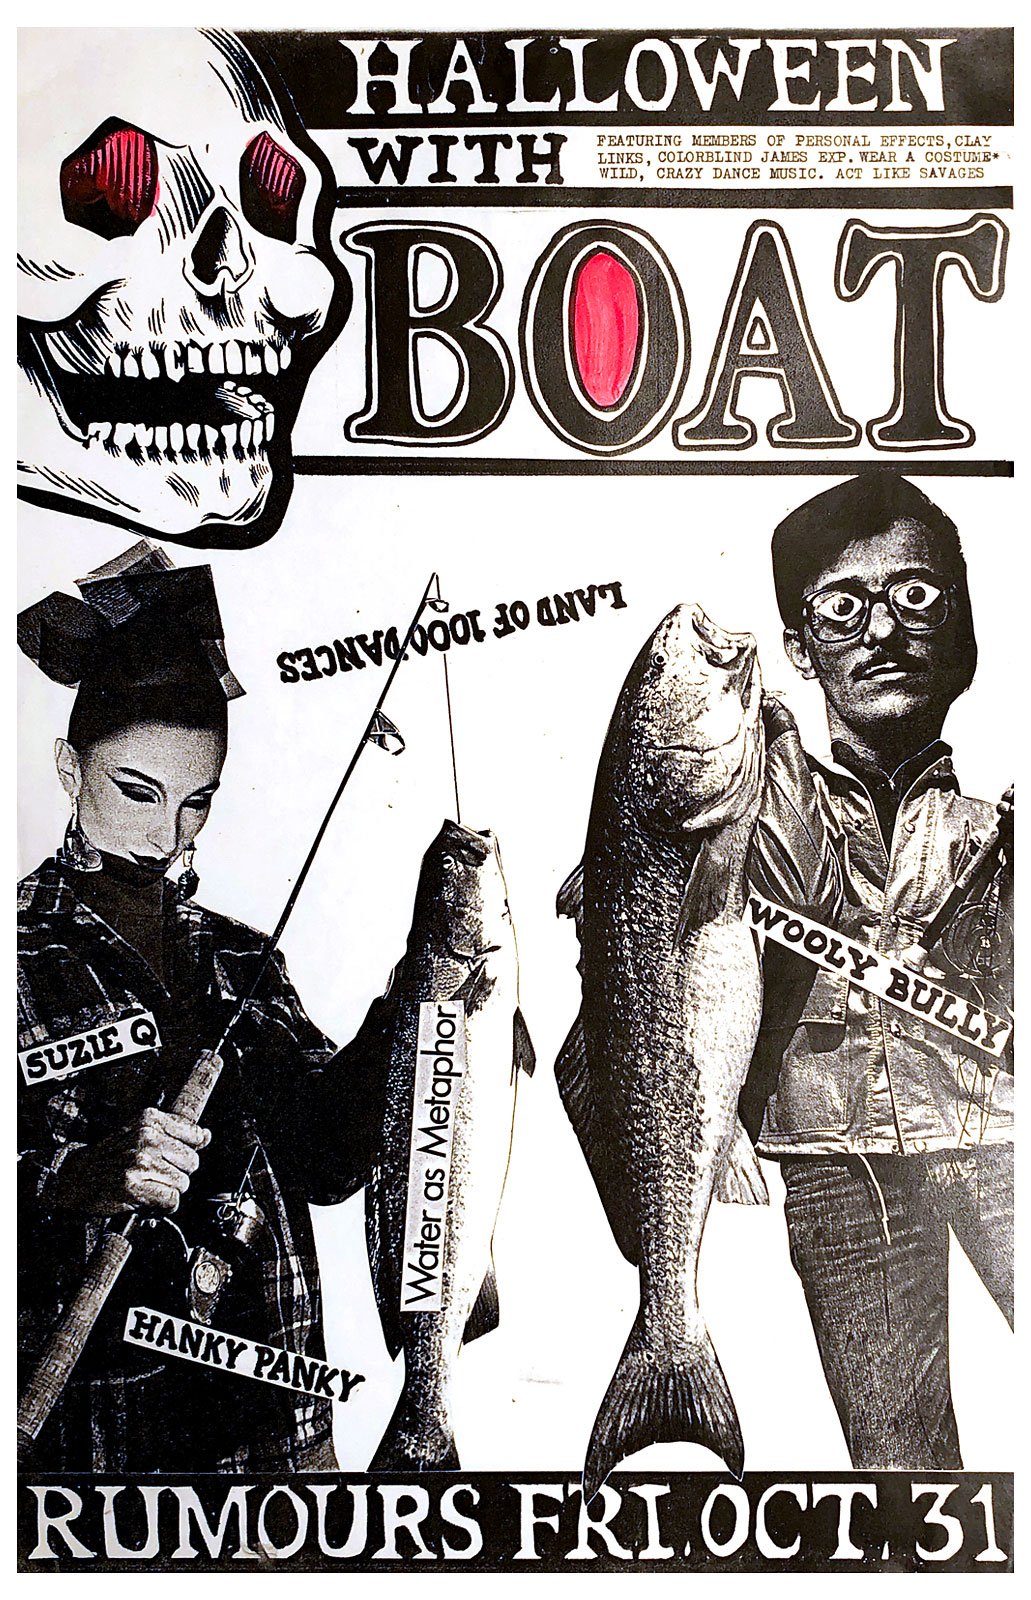 Poster for Boat, with three members of Personal Effects plus Kevin Vicalvi on bass and Phil Marshall from Colorblind James on guitar, performing at Rumours, formerly Snakesister's and now Lux, on Halloween 10.31.1986. The band played all cover songs this night.